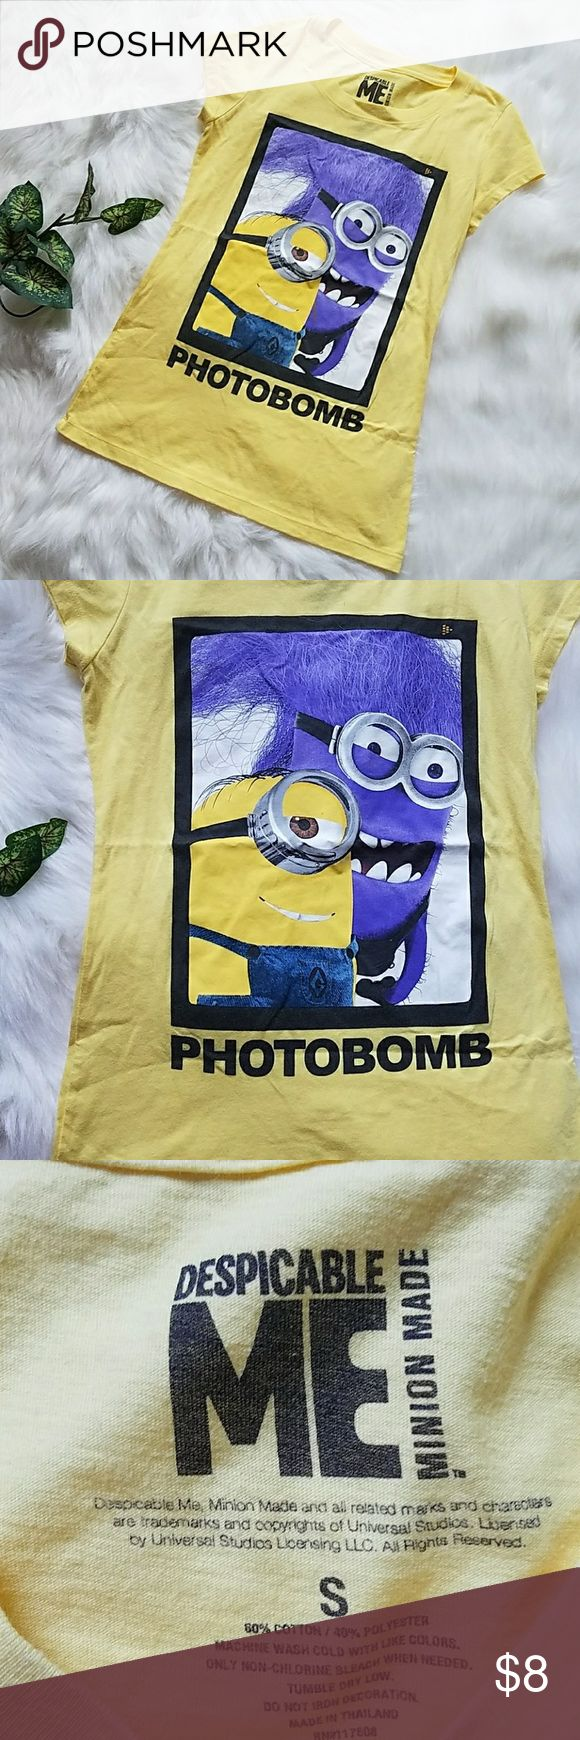 Despicable Me Minion face PhotoBomb yellow shirt Bust: 28 inches wide Length: 24 inches long   Perfect condition without holes or tears Despicable Me Tops Tees - Short Sleeve